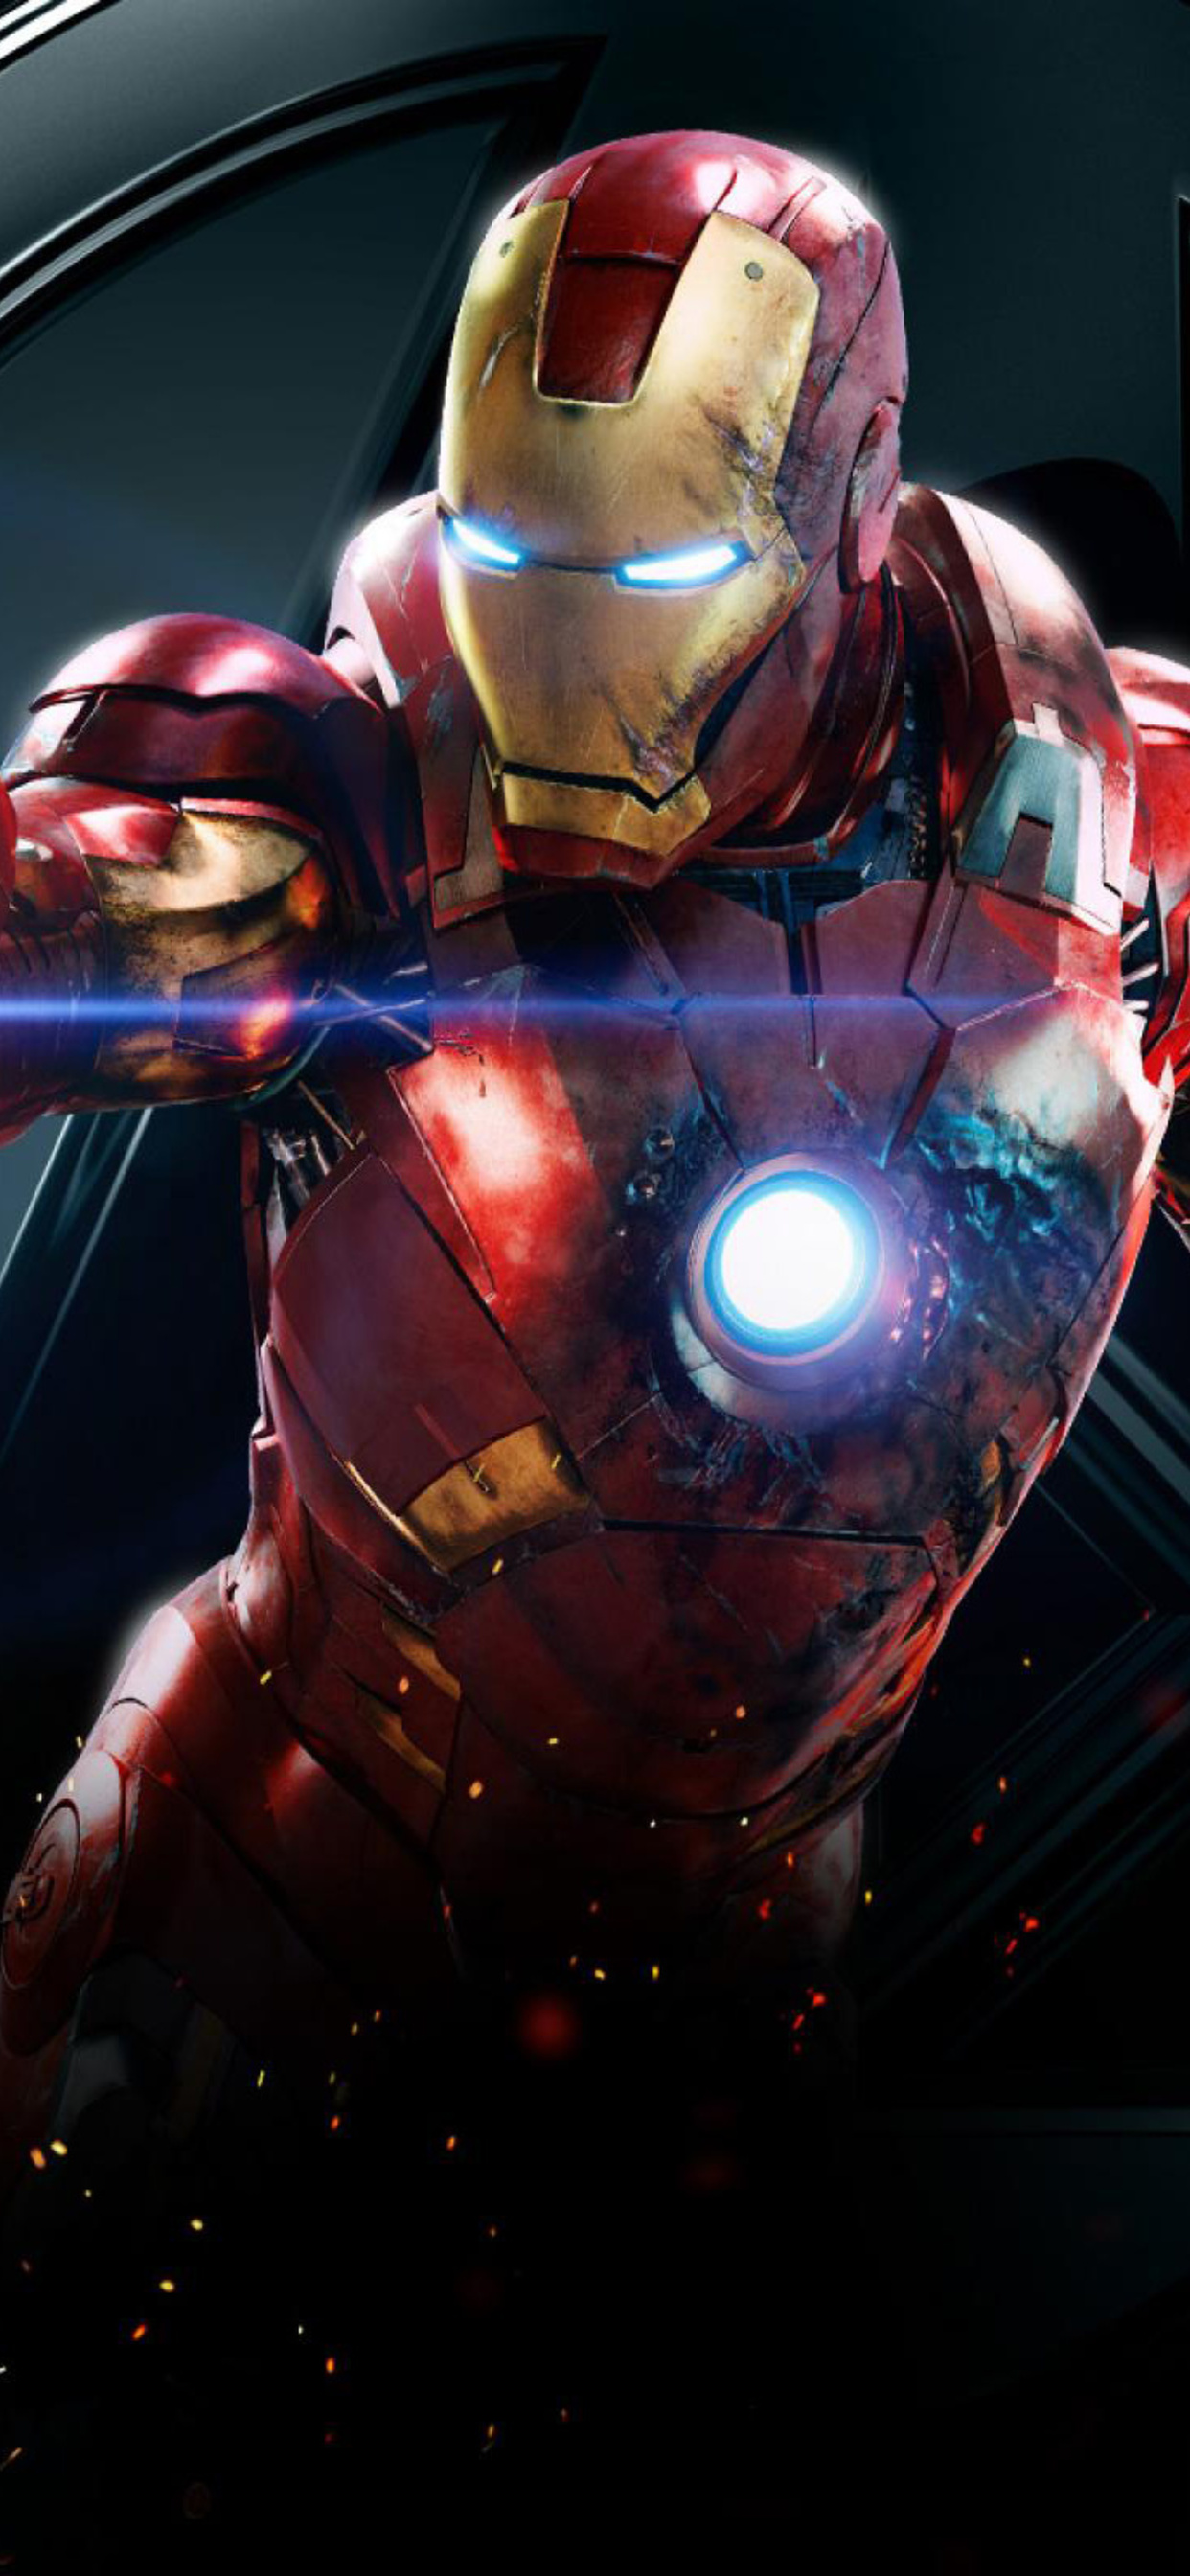 1242x2688 Iron Man Avengers Artwork Iphone Xs Max Hd 4k Wallpapers